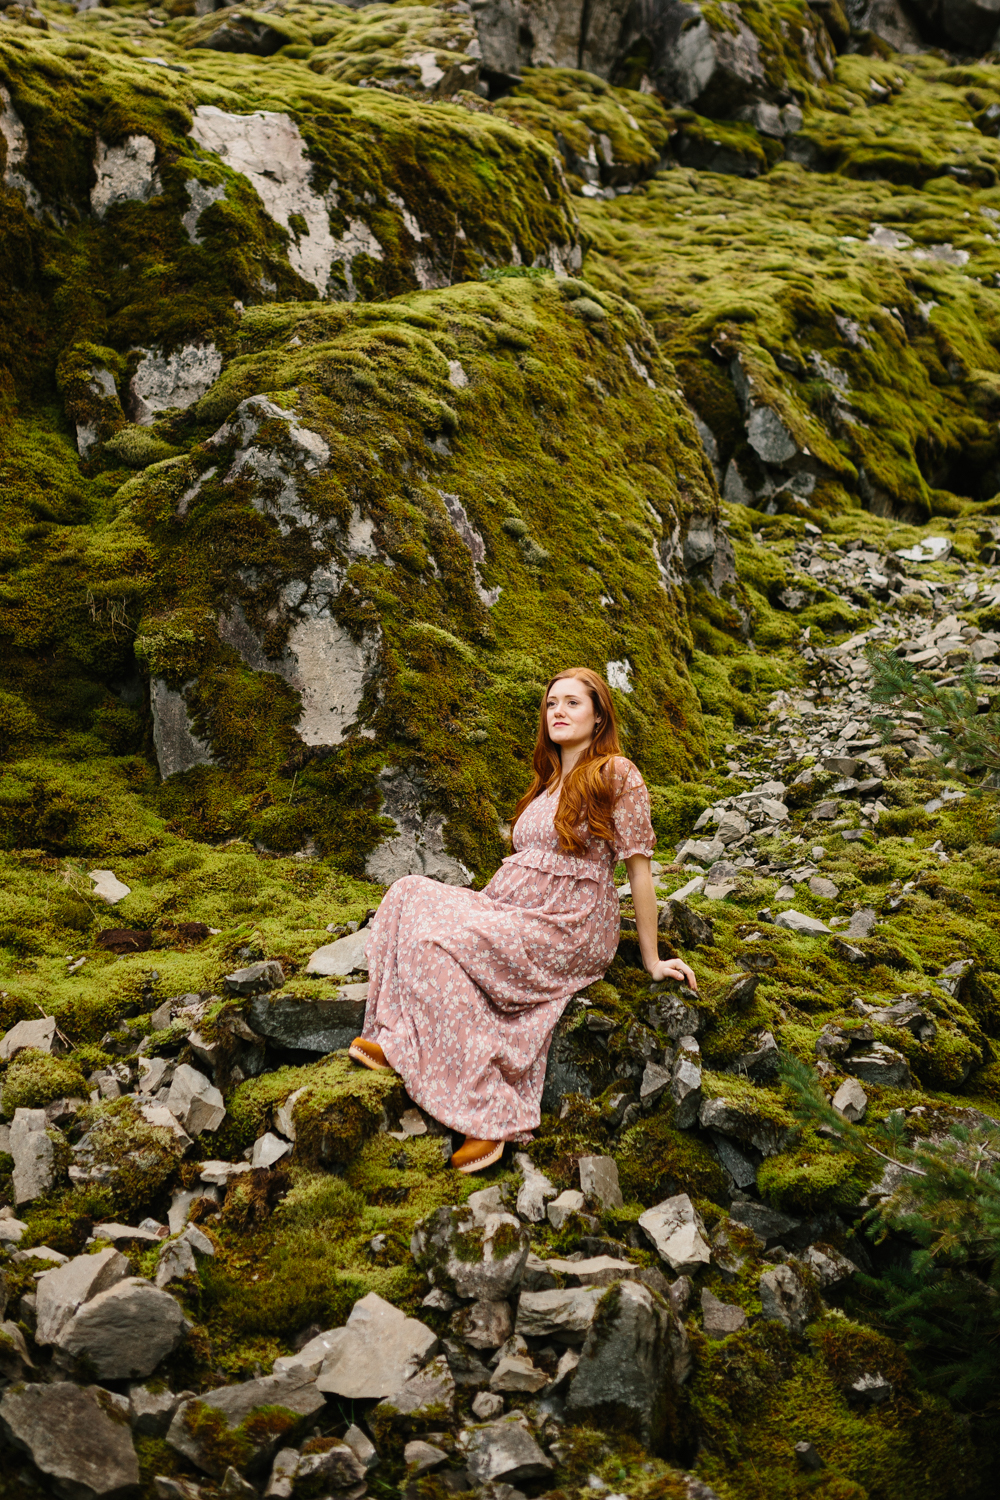 A beautiful, red-haired woman sitting on mossy rocks